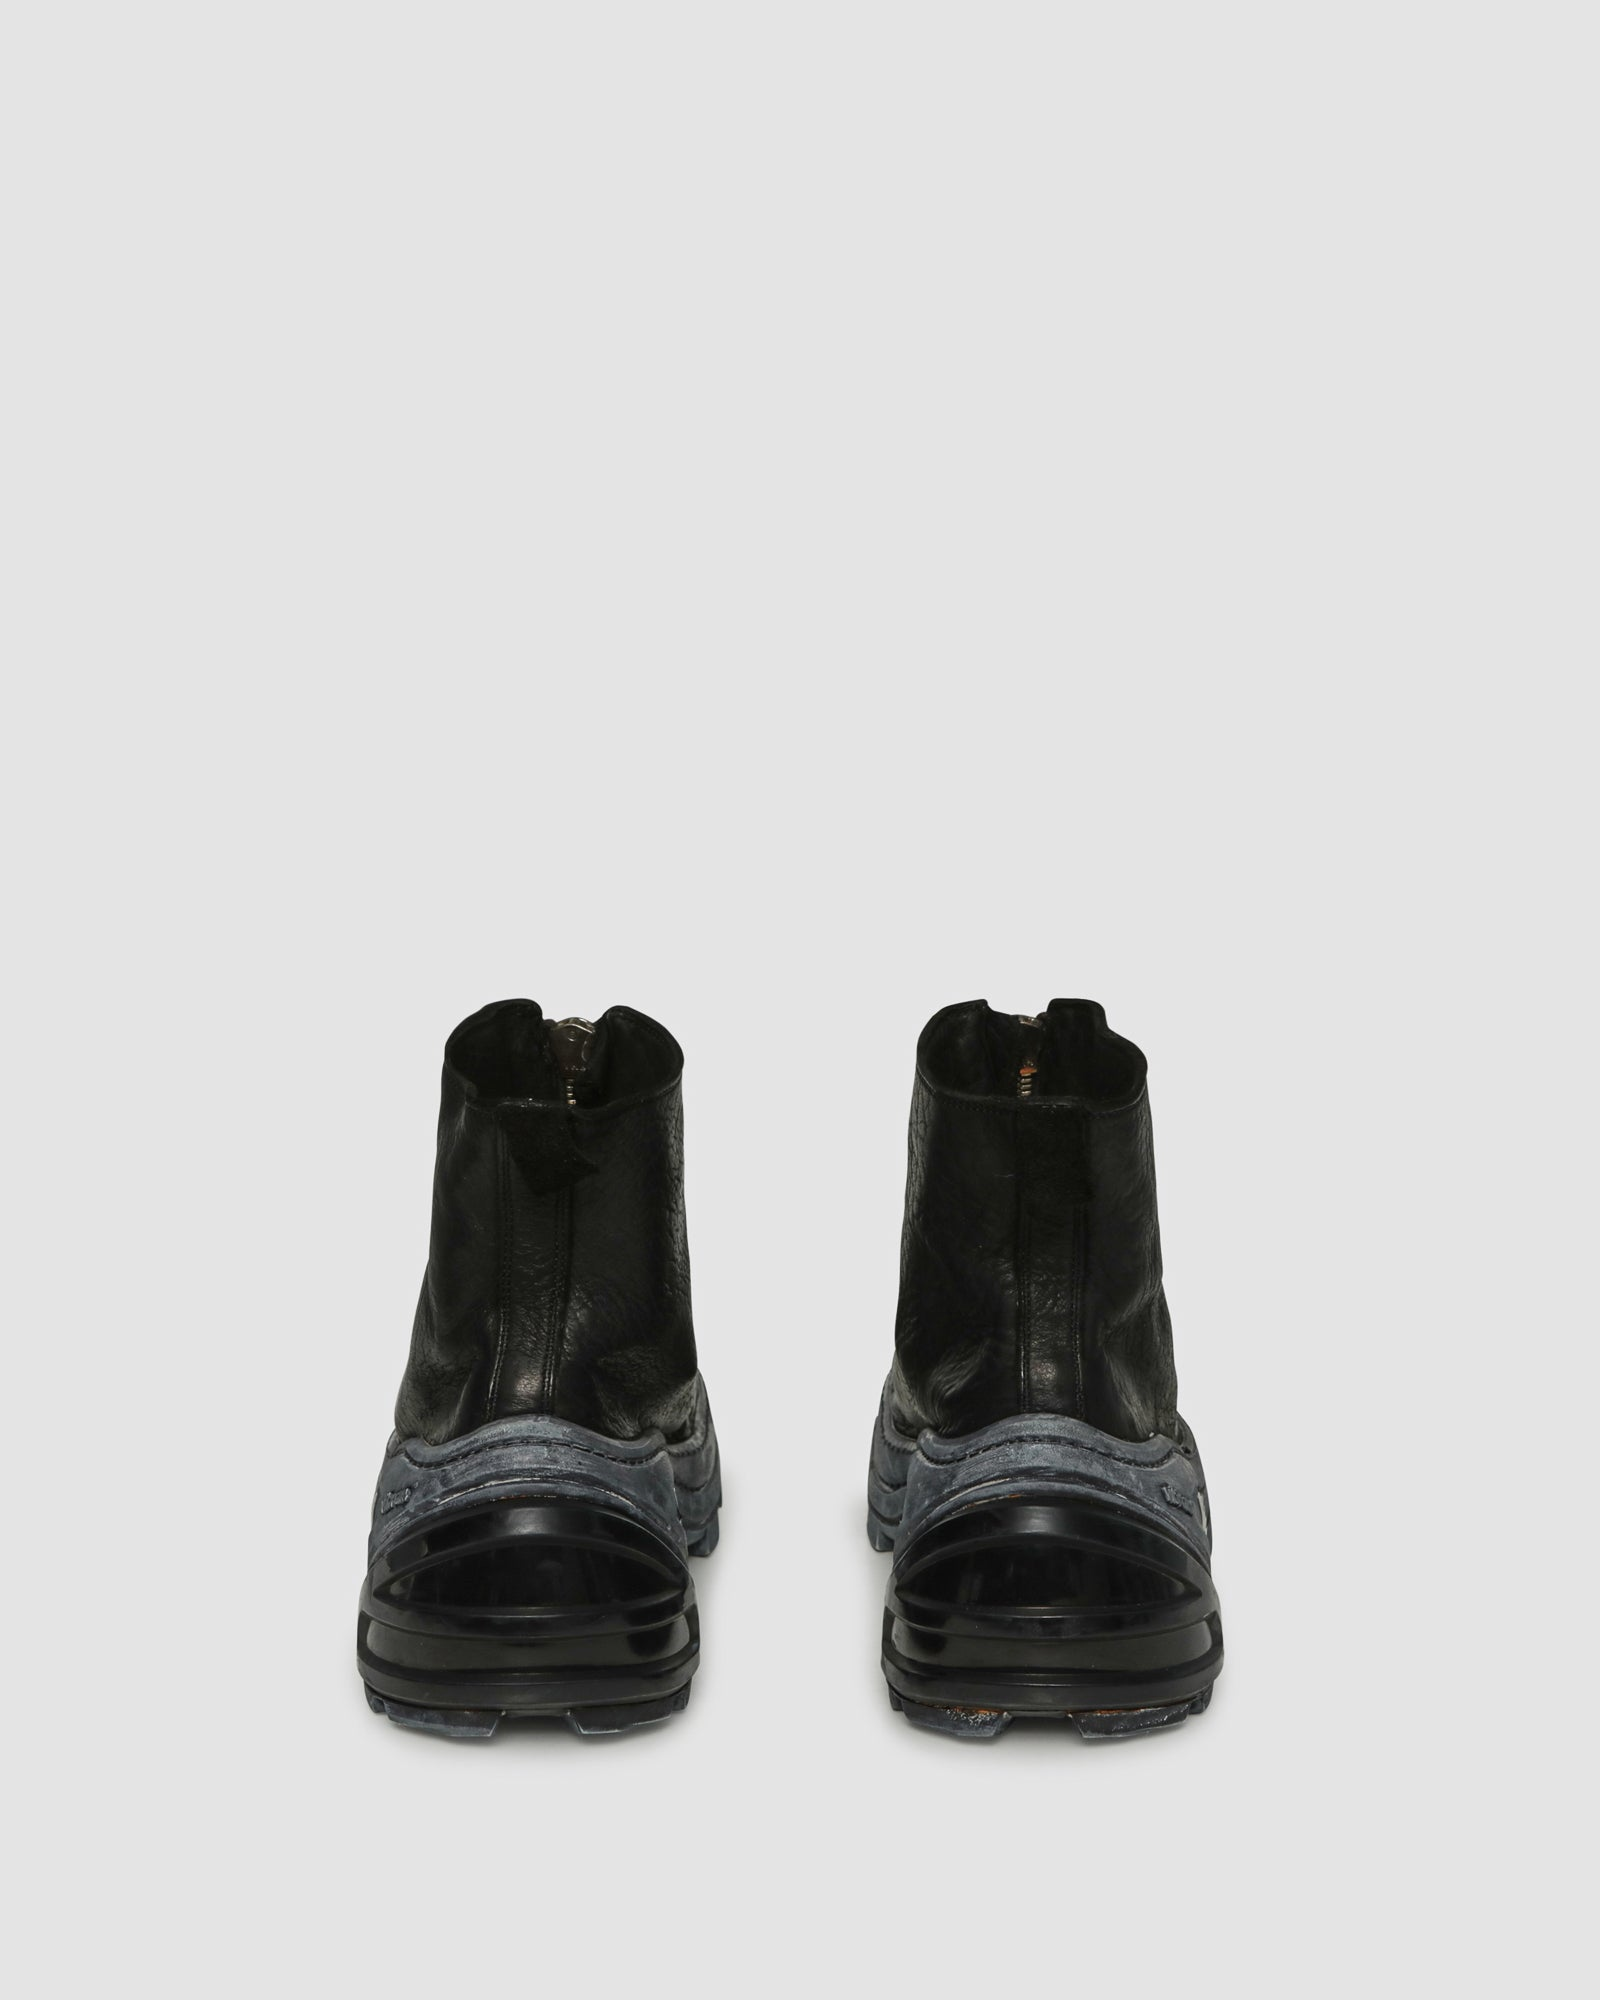 1017 ALYX 9SM | GUIDI ALYX FRONT ZIP BOOT WITH VIBRAM SOLE | Shoe | Black, Google Shopping, Guidi, Man, S20, Shoes, Woman